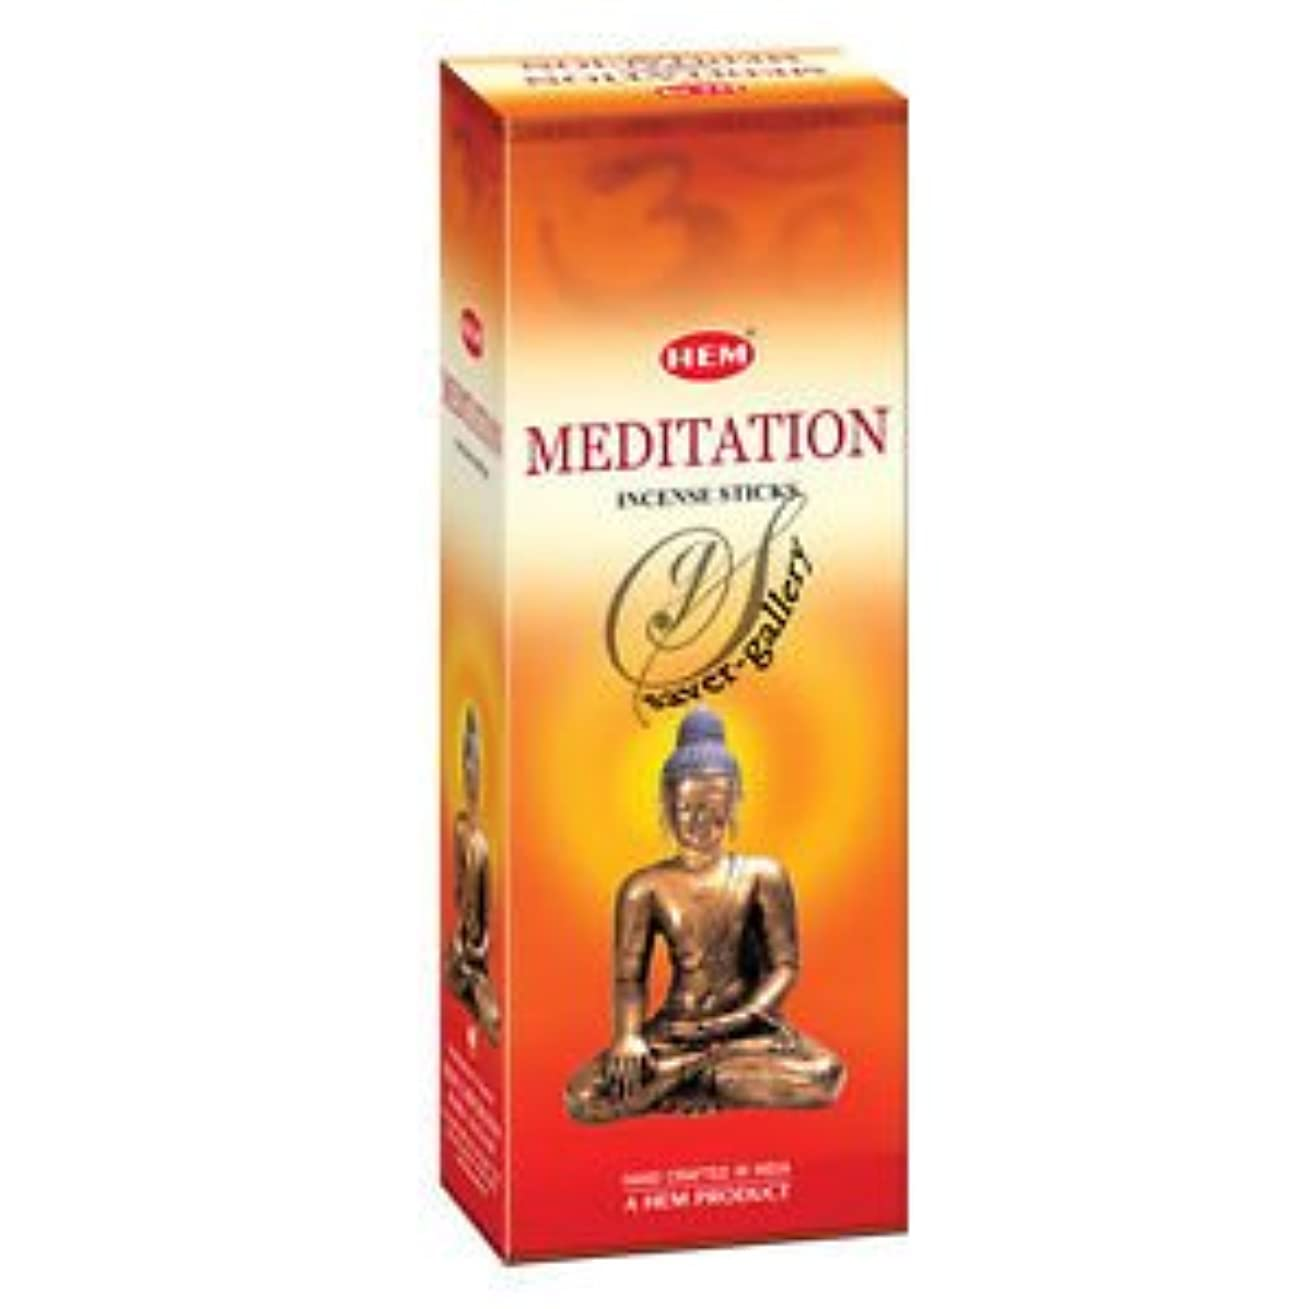 甘美なピービッシュ頑固なHem Meditation Incense Sticks (9.3 cm X 6.0 cm X 25.5cm, Black )